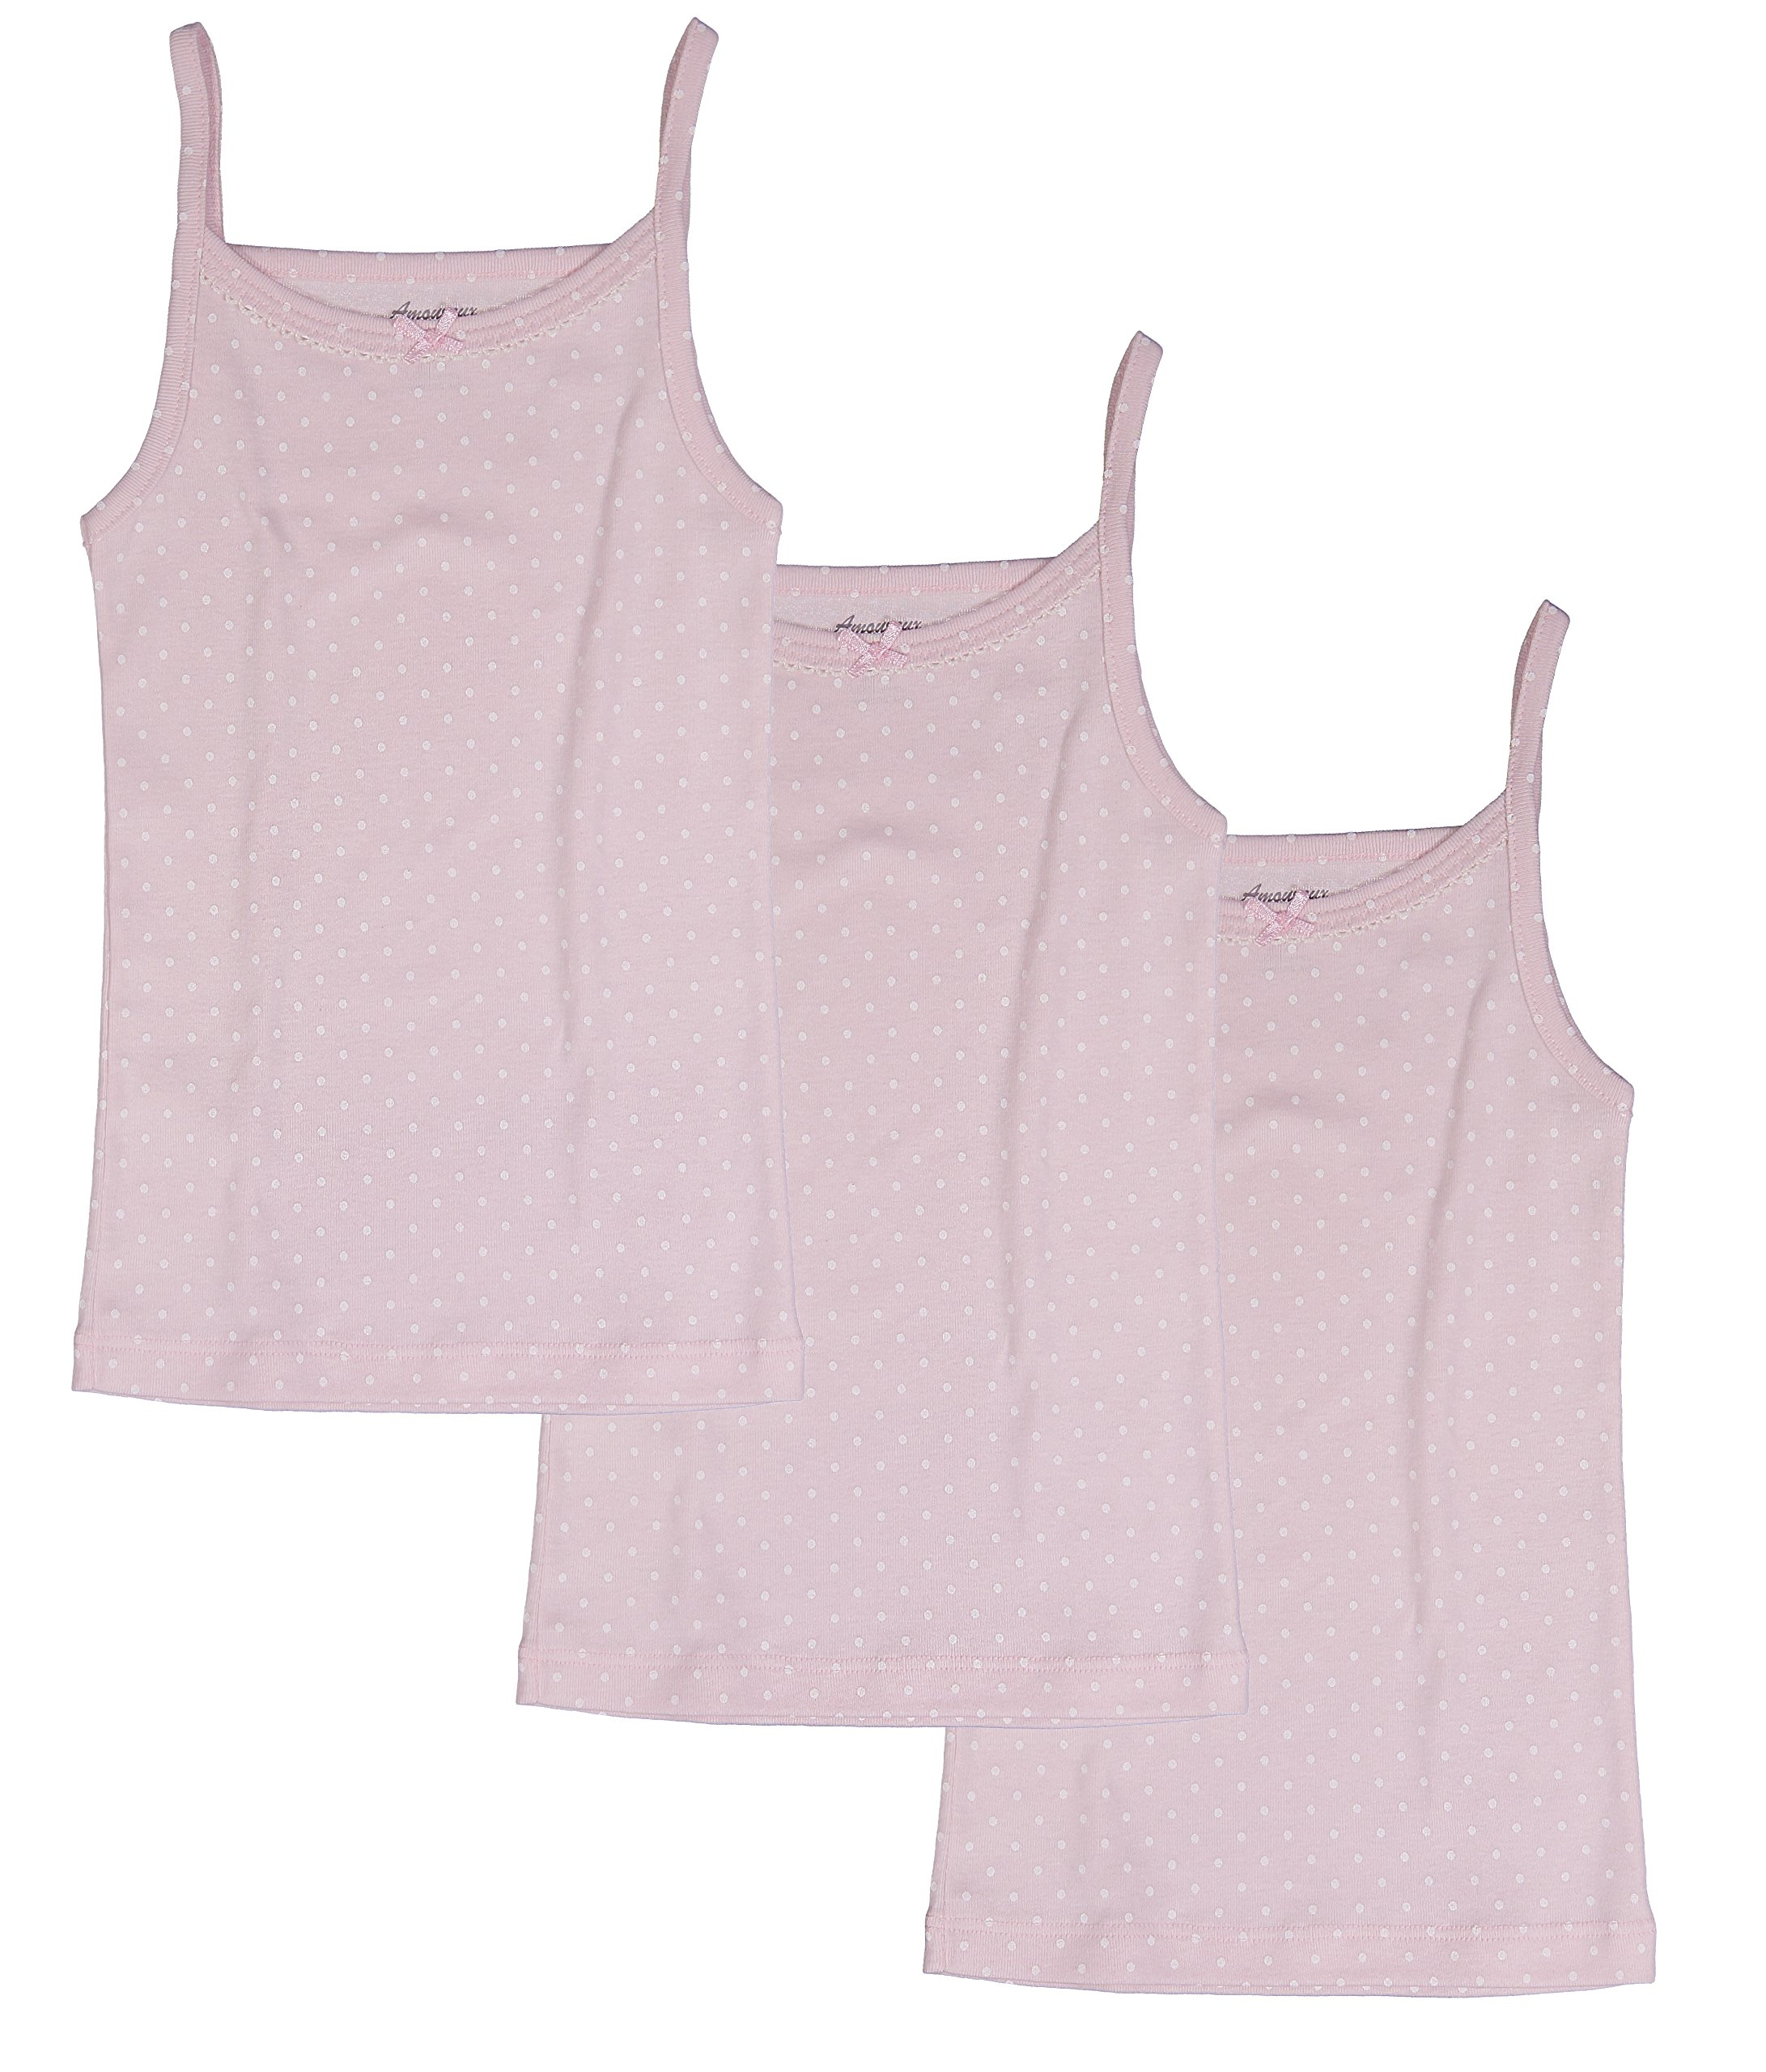 Amoureux Bebe Toddler and Girls Camisole Undershirts- Tagless 100% Cotton Tank Tops Cami Pink/White Dots. 3 Pk 2-3